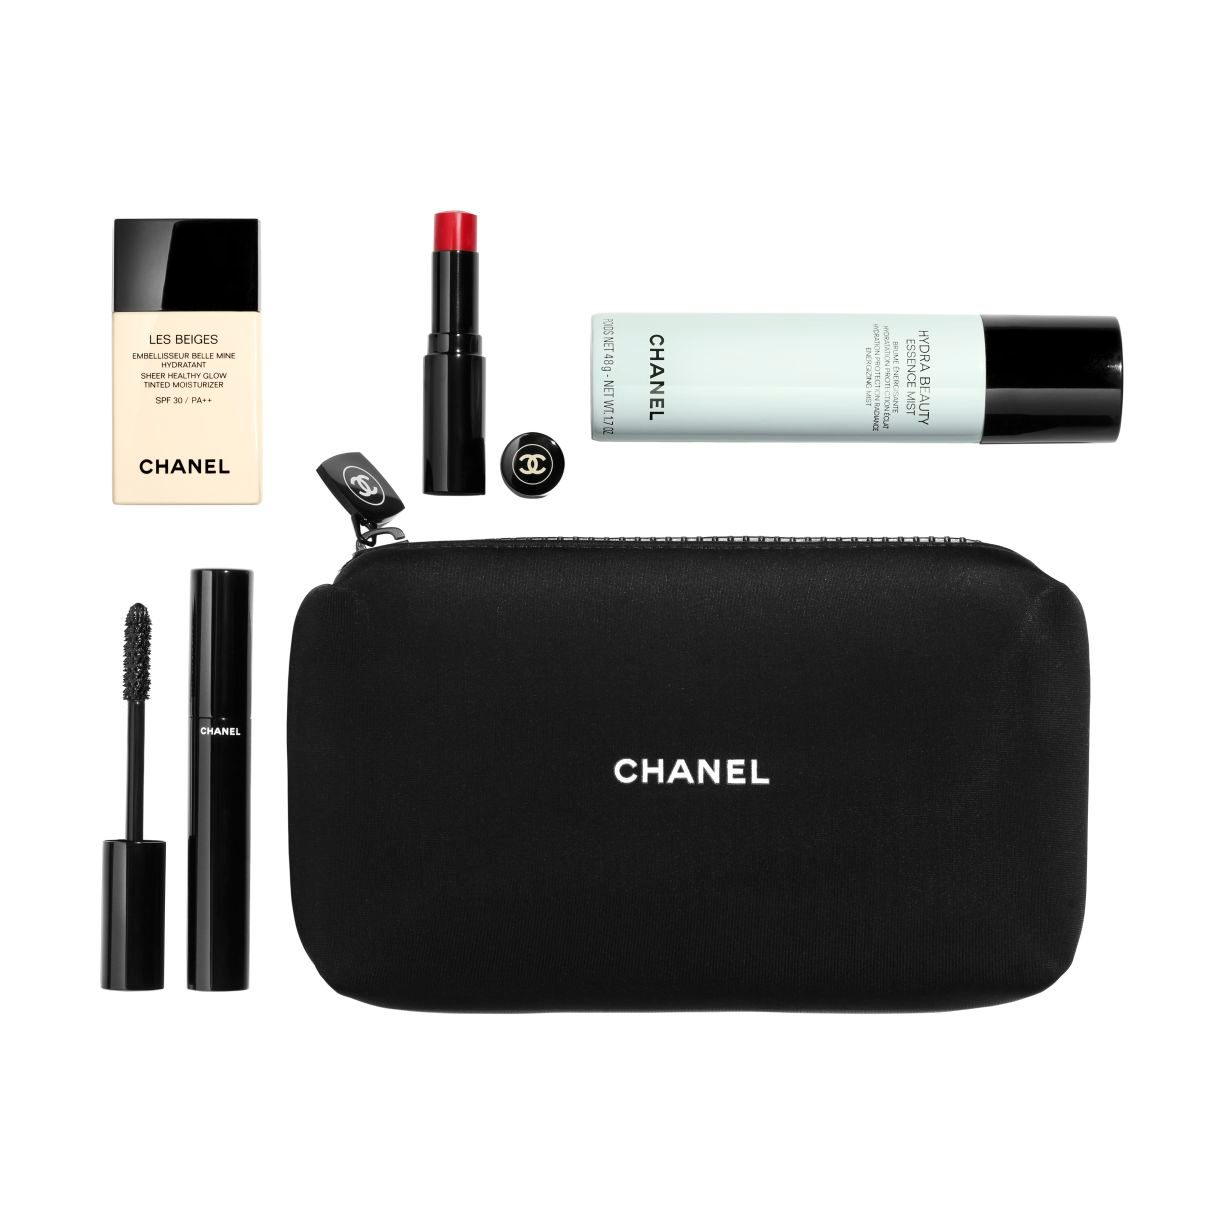 SET SPORT DE CHANEL WORKOUT BEAUTY ROUTINE ESSENTIALS MEDIUM LIGHT